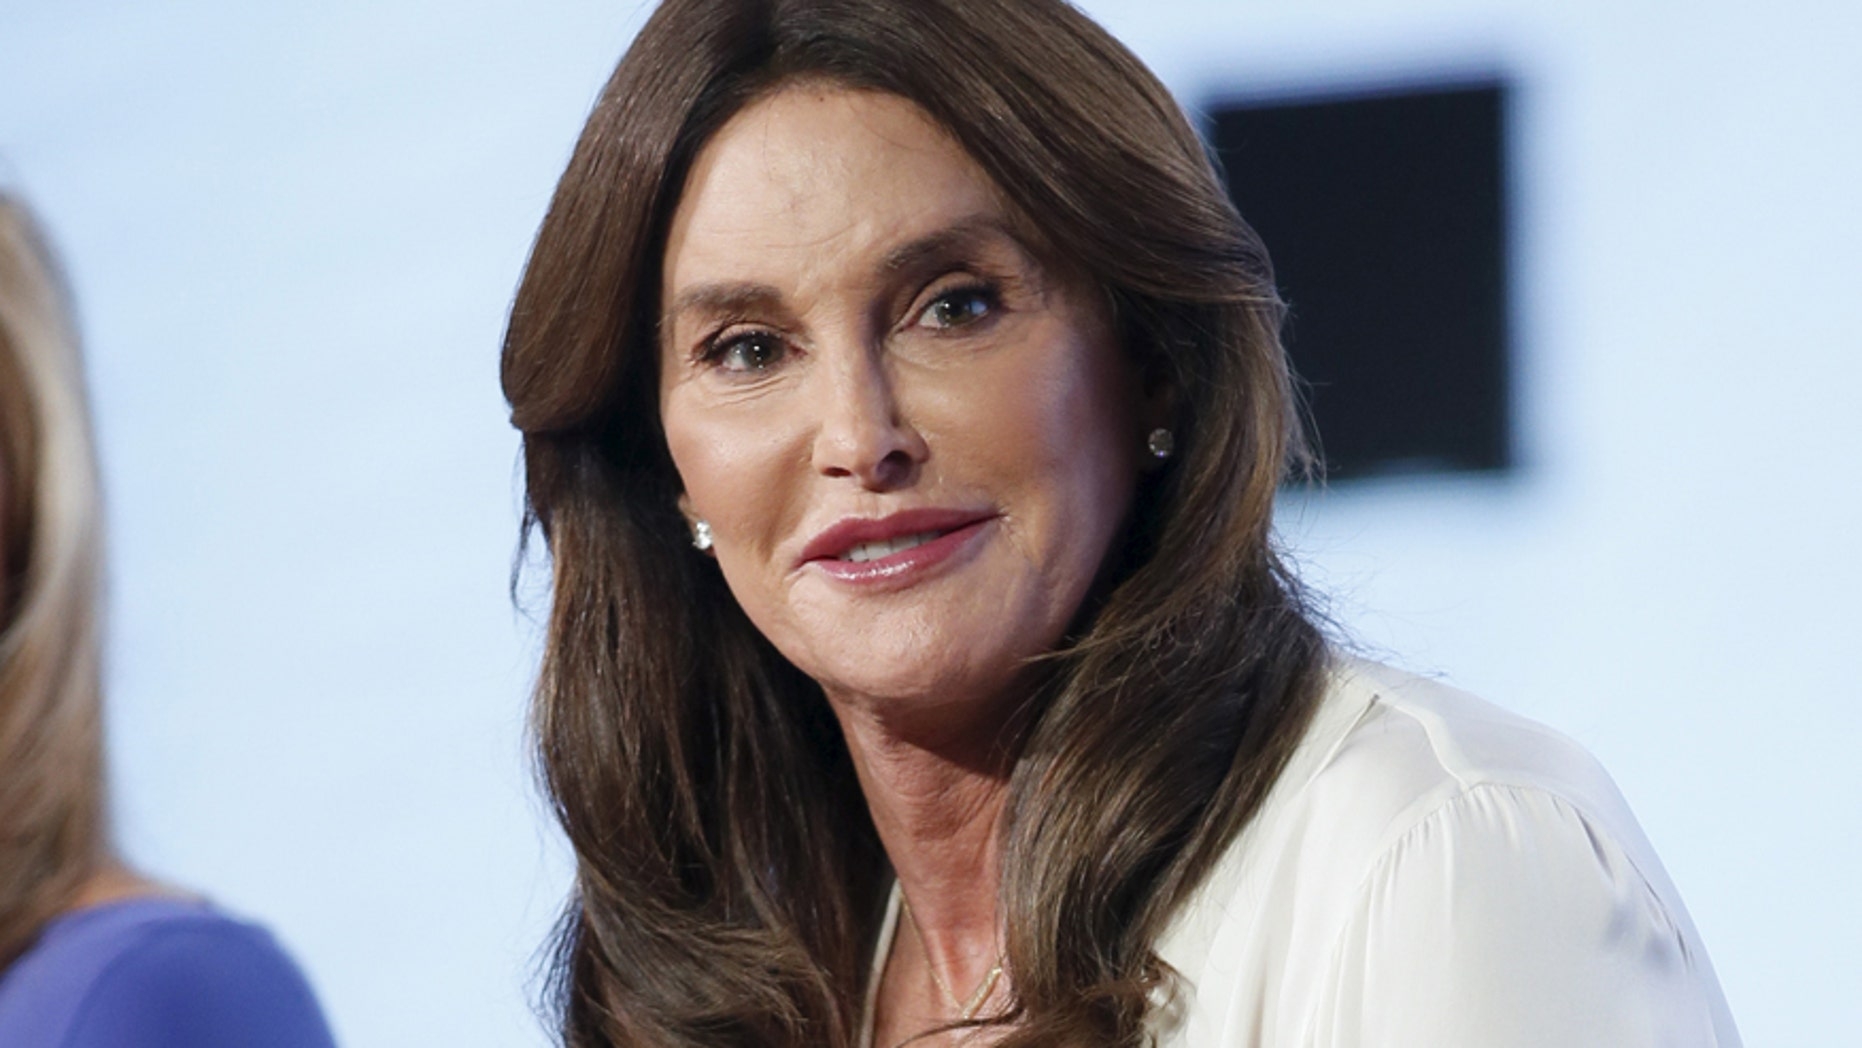 """Cast member Caitlyn Jenner participates in a panel for the E! Entertainment Television series """"I Am Cait"""" during the Television Critics Association (TCA) Cable Winter Press Tour in Pasadena, California, January 14, 2016."""